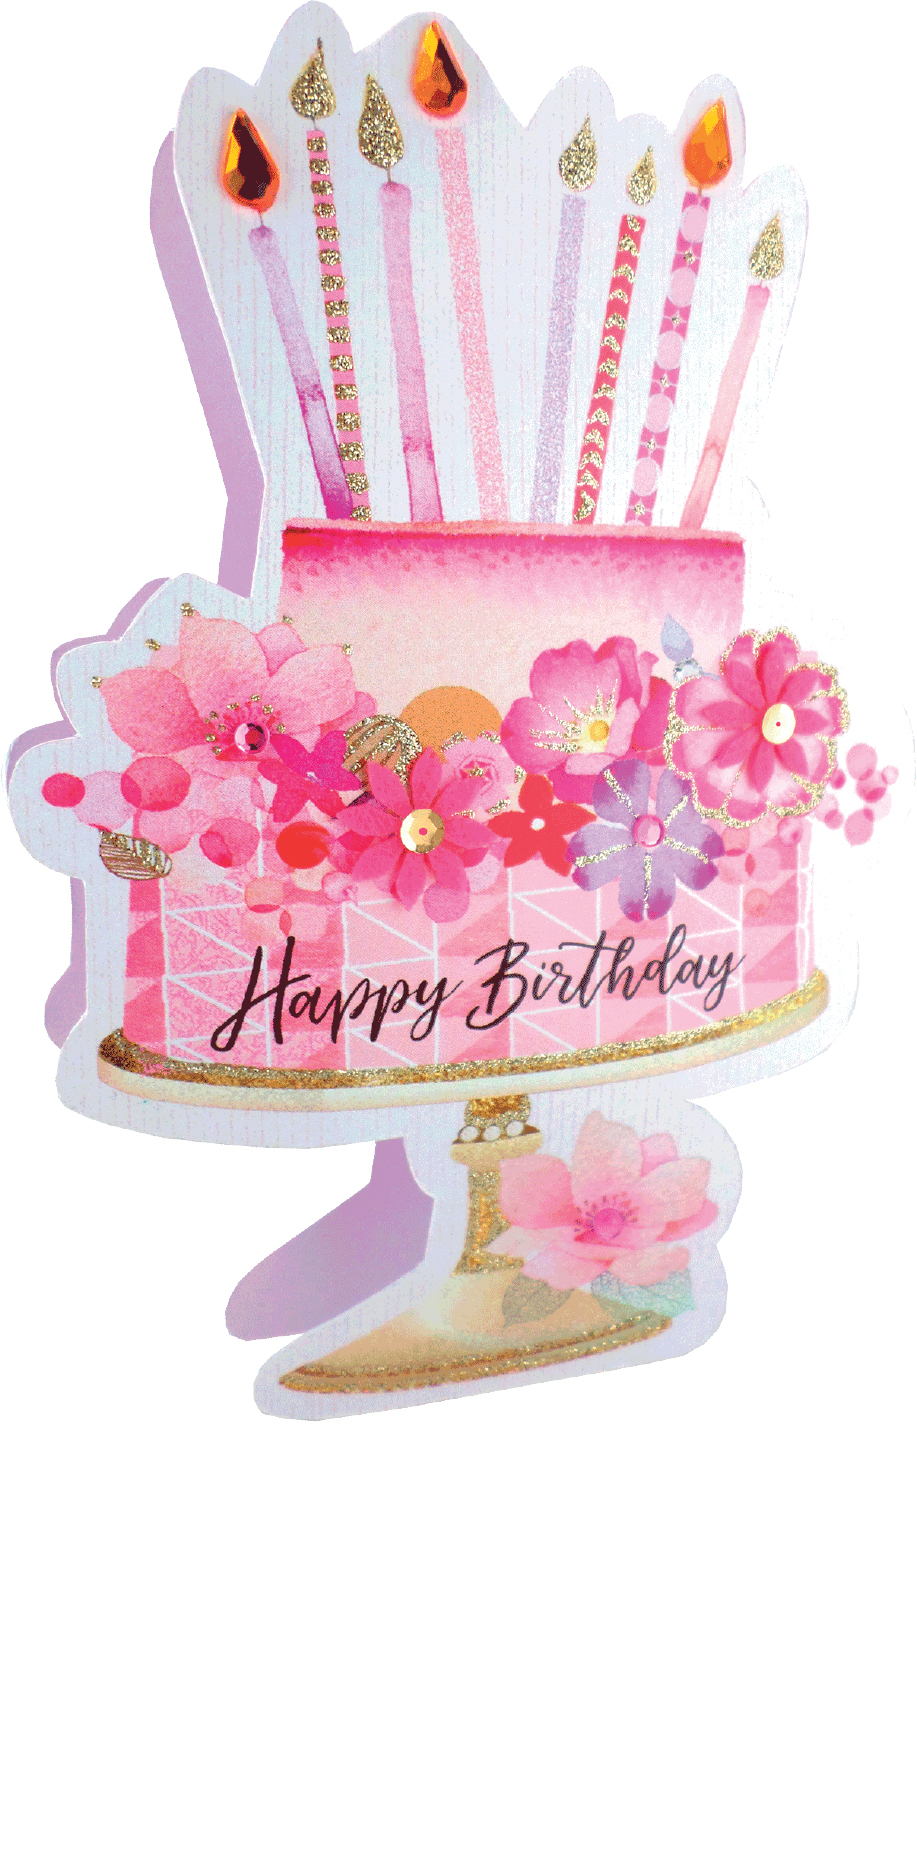 Stupendous Pink Cake Happy Birthday 3D Paper Dazzle Birthday Greeting Card Funny Birthday Cards Online Fluifree Goldxyz